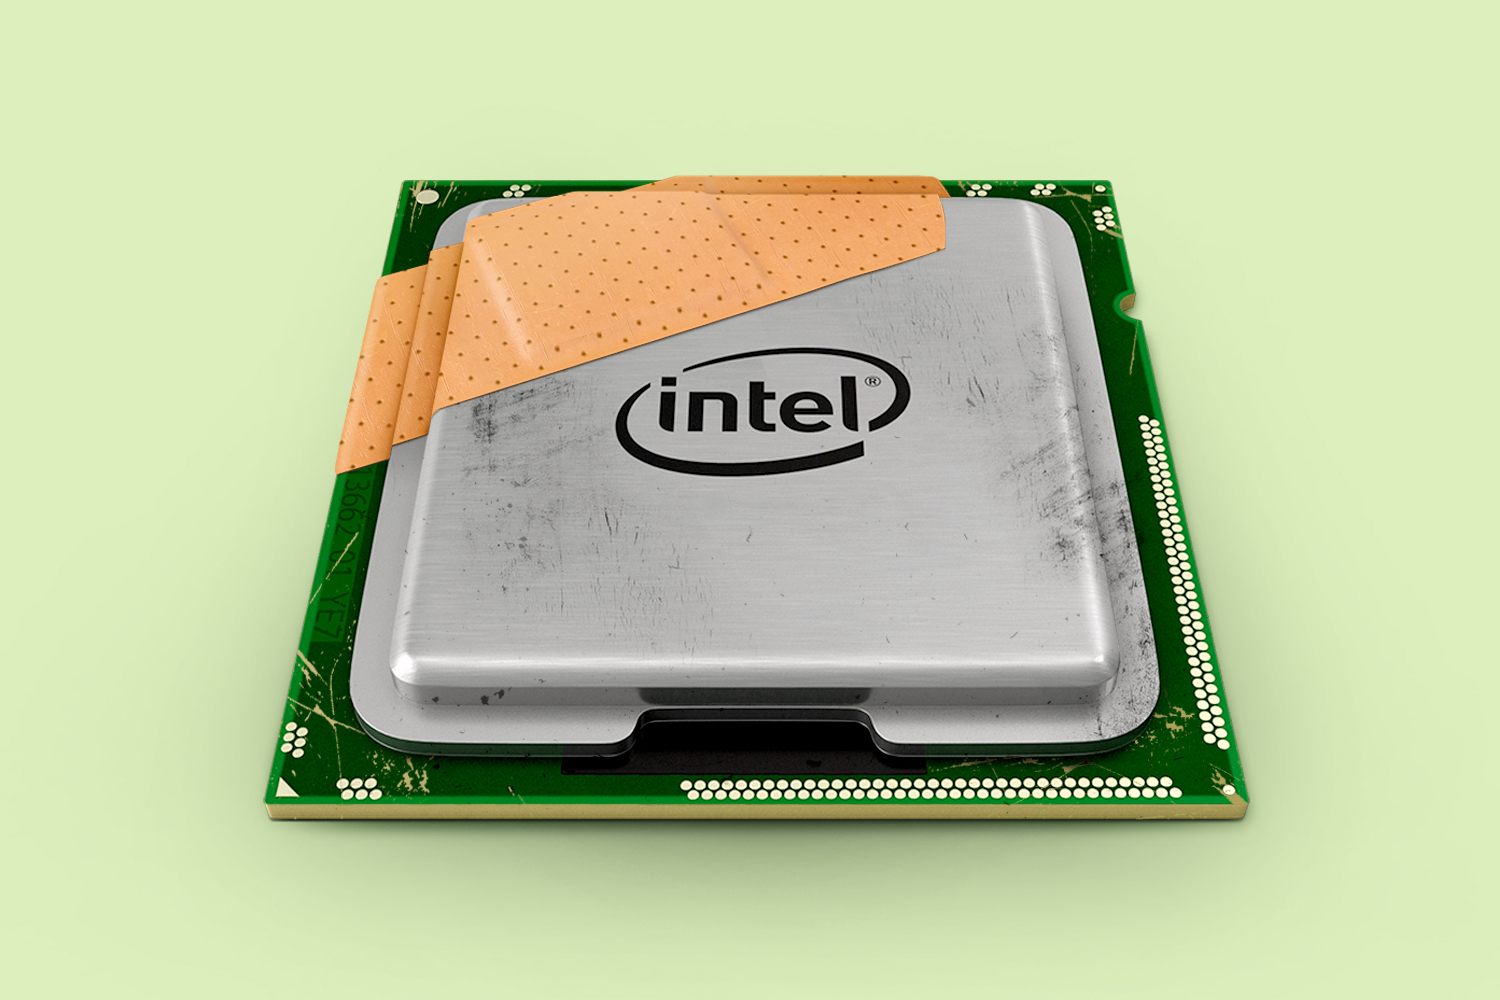 Intel Beats Expectations in Q4 Earnings